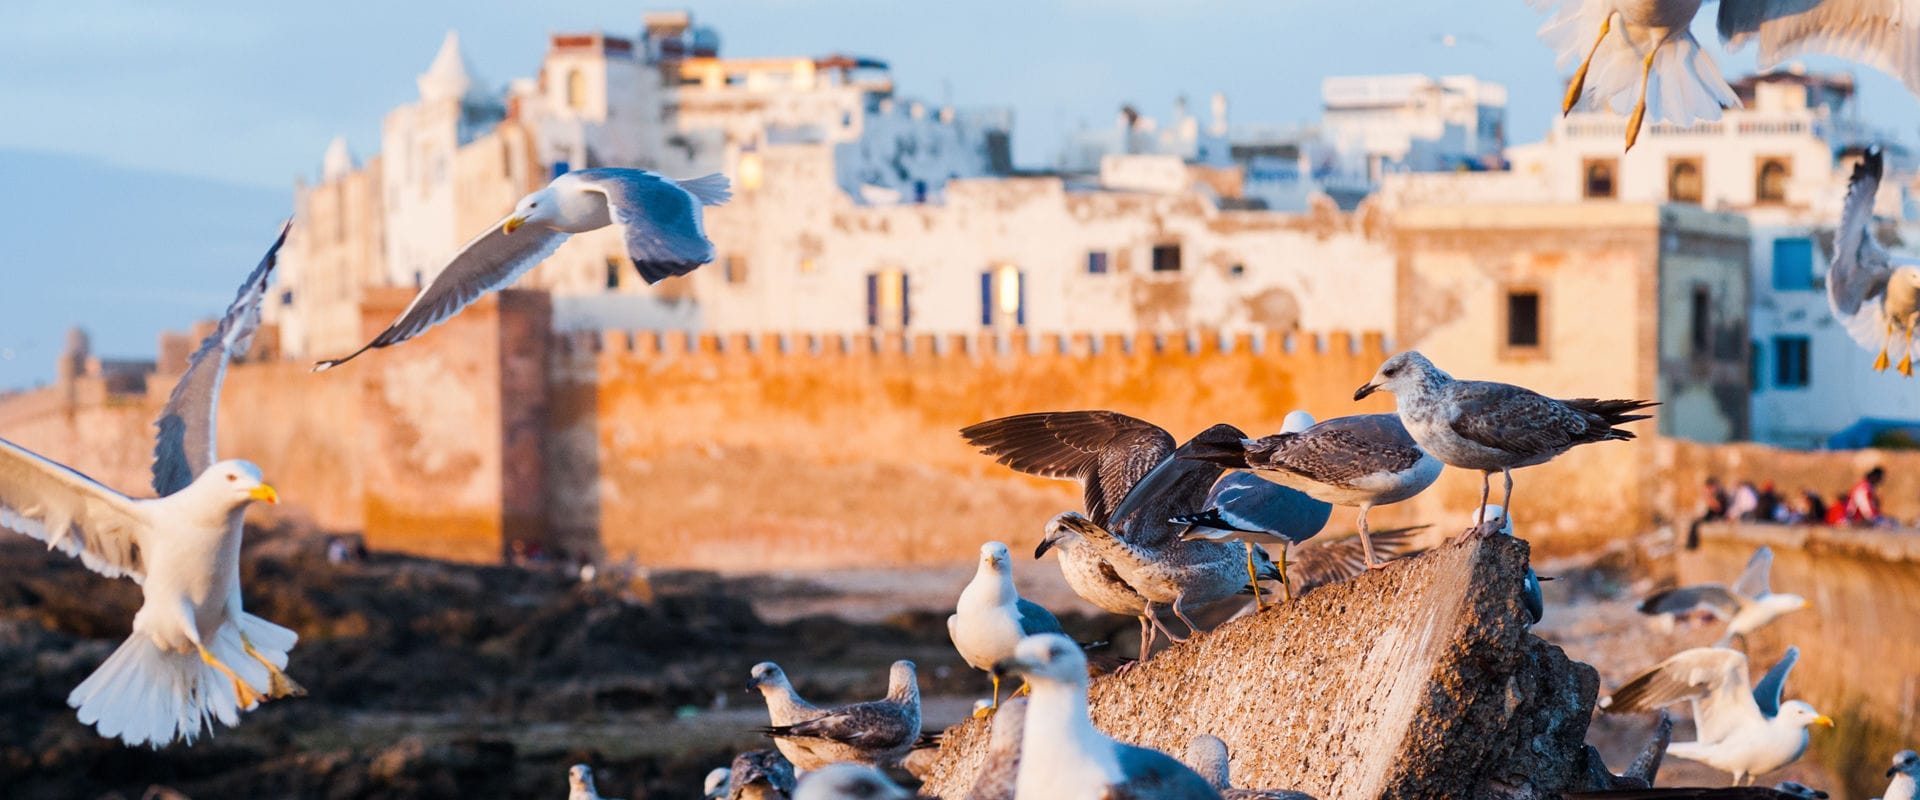 The Grantourismo Travels Guide to Essaouira. Copyright © 2017 Terence Carter / Grantourismo. All Rights Reserved.